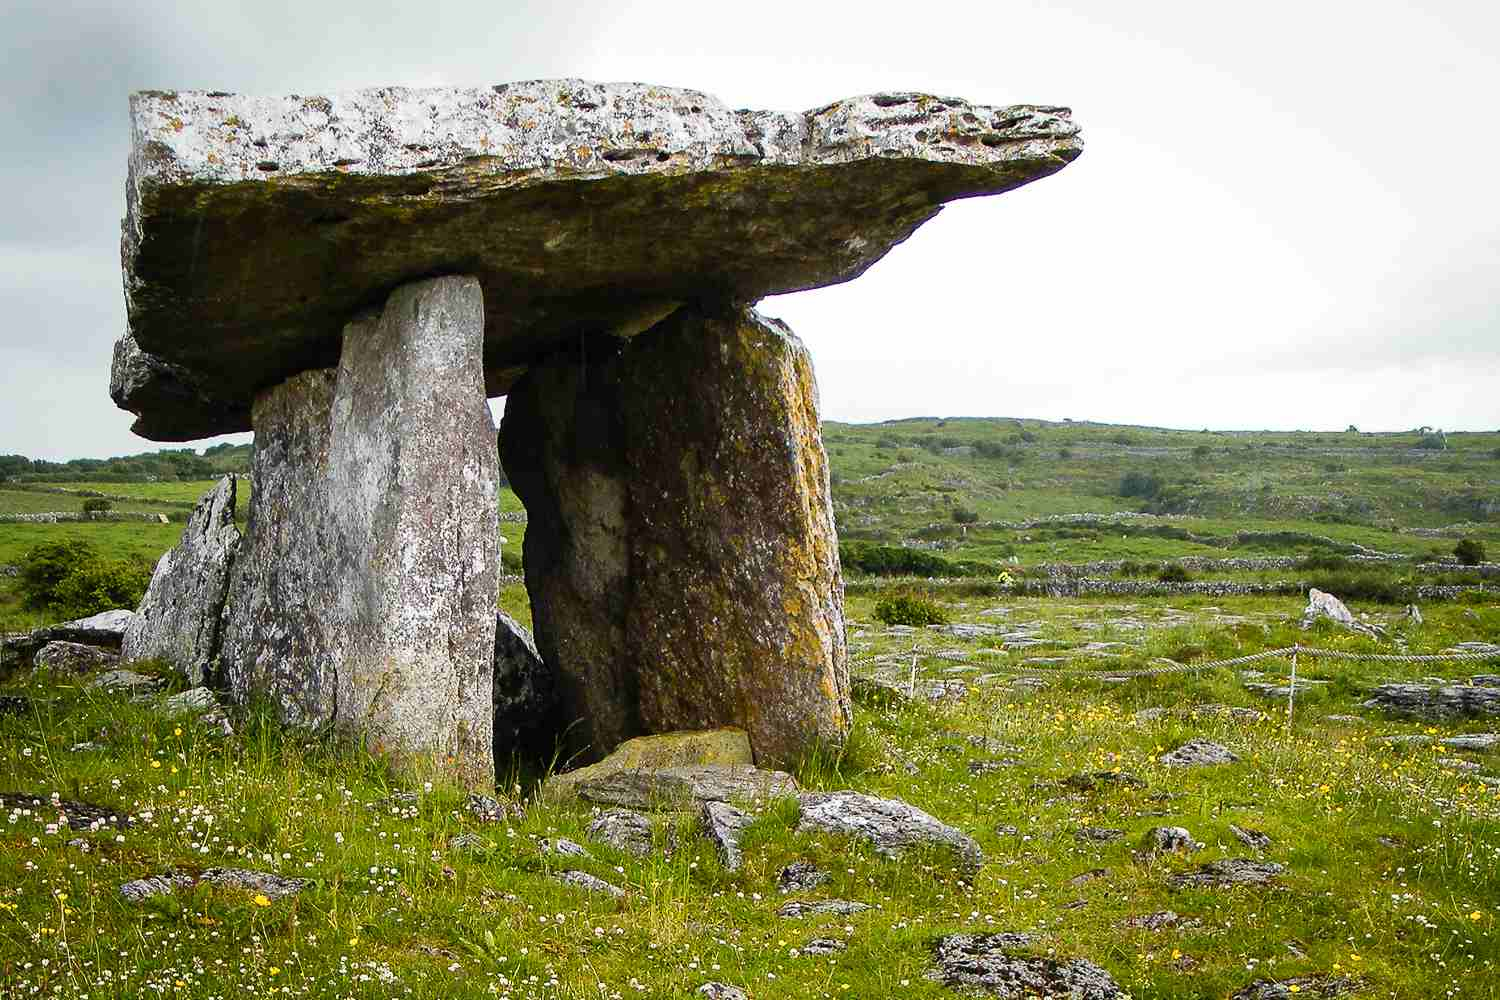 The Burren - bleak at times, then mysterious